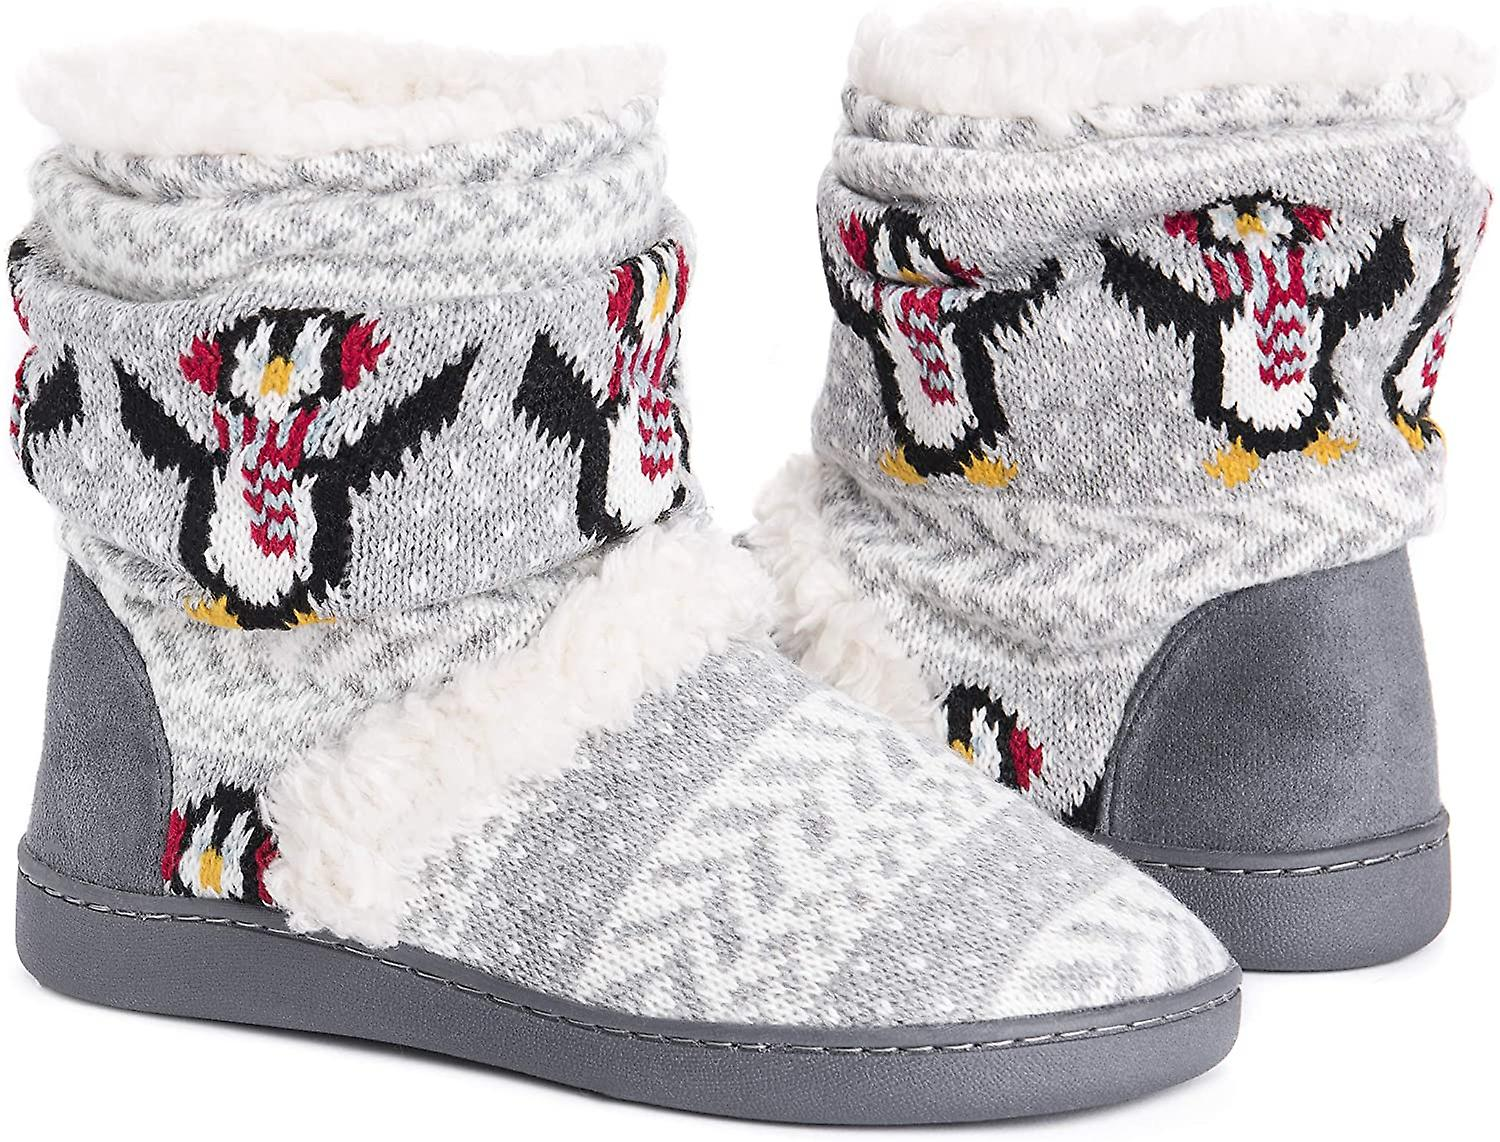 MUK LUKS Women's Holly Slippers QLRo1